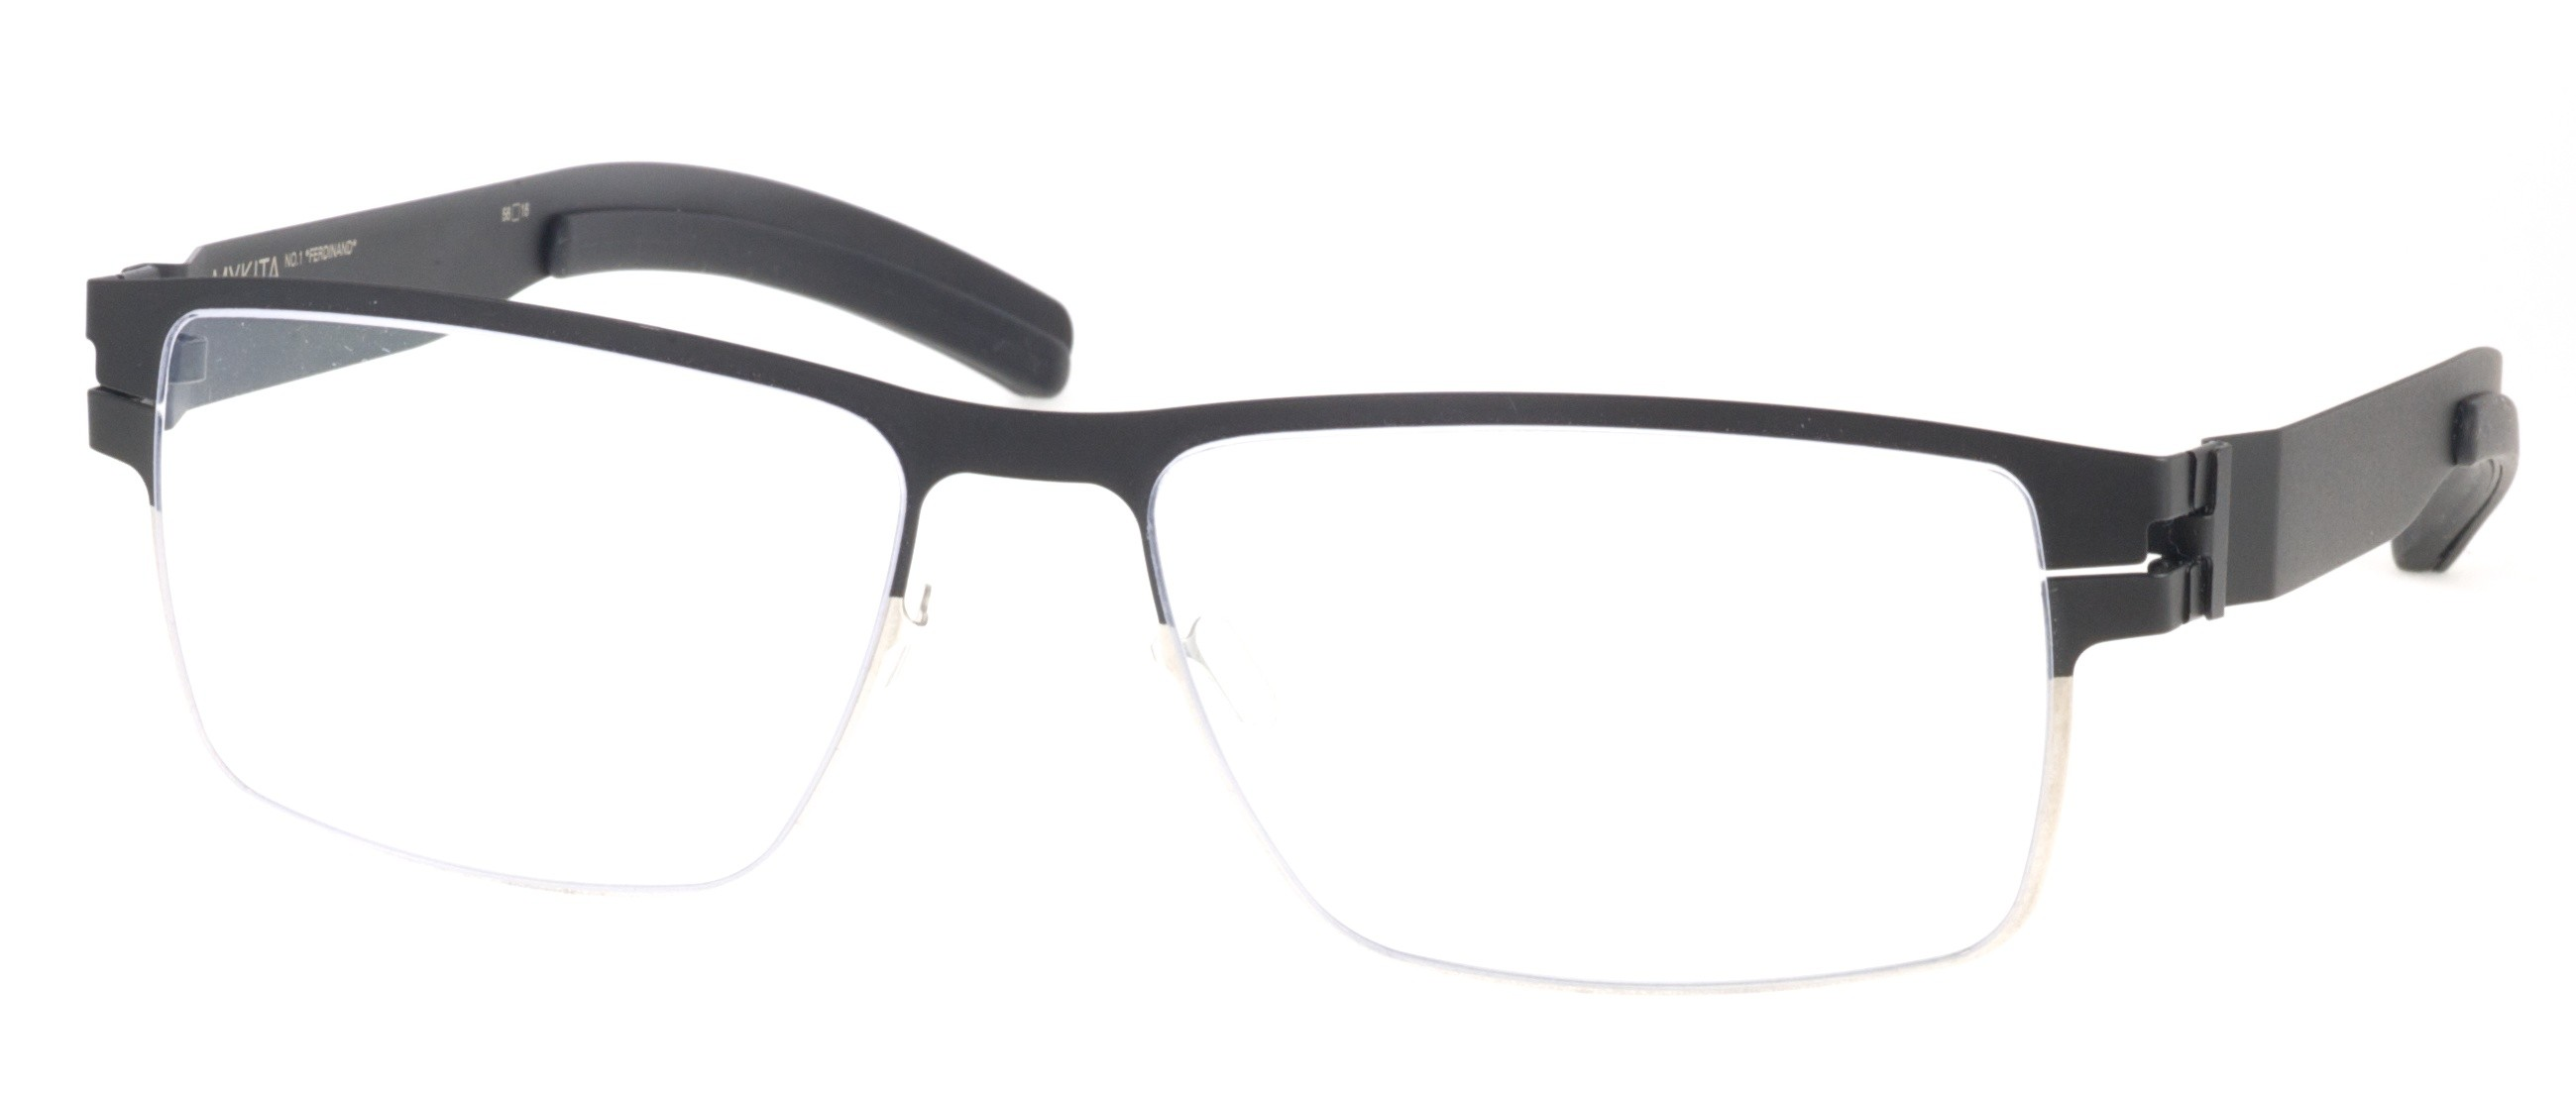 Korean Eyeglasses | Mykita Glasses | German Eyeglasses